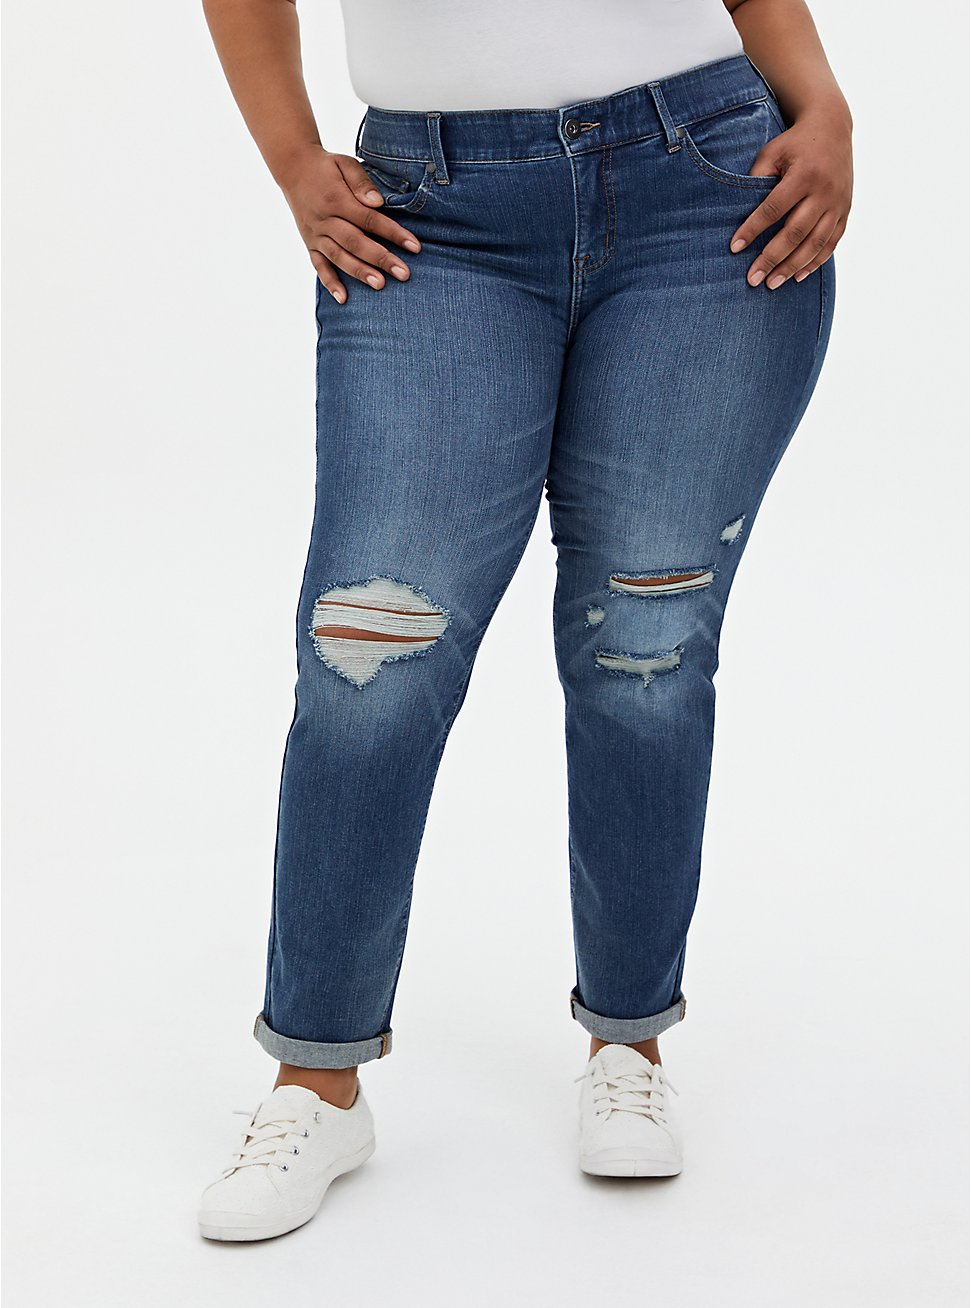 Bombshell Straight Jean - Premium Stretch Medium Wash, LOS FELIZ, hi-res